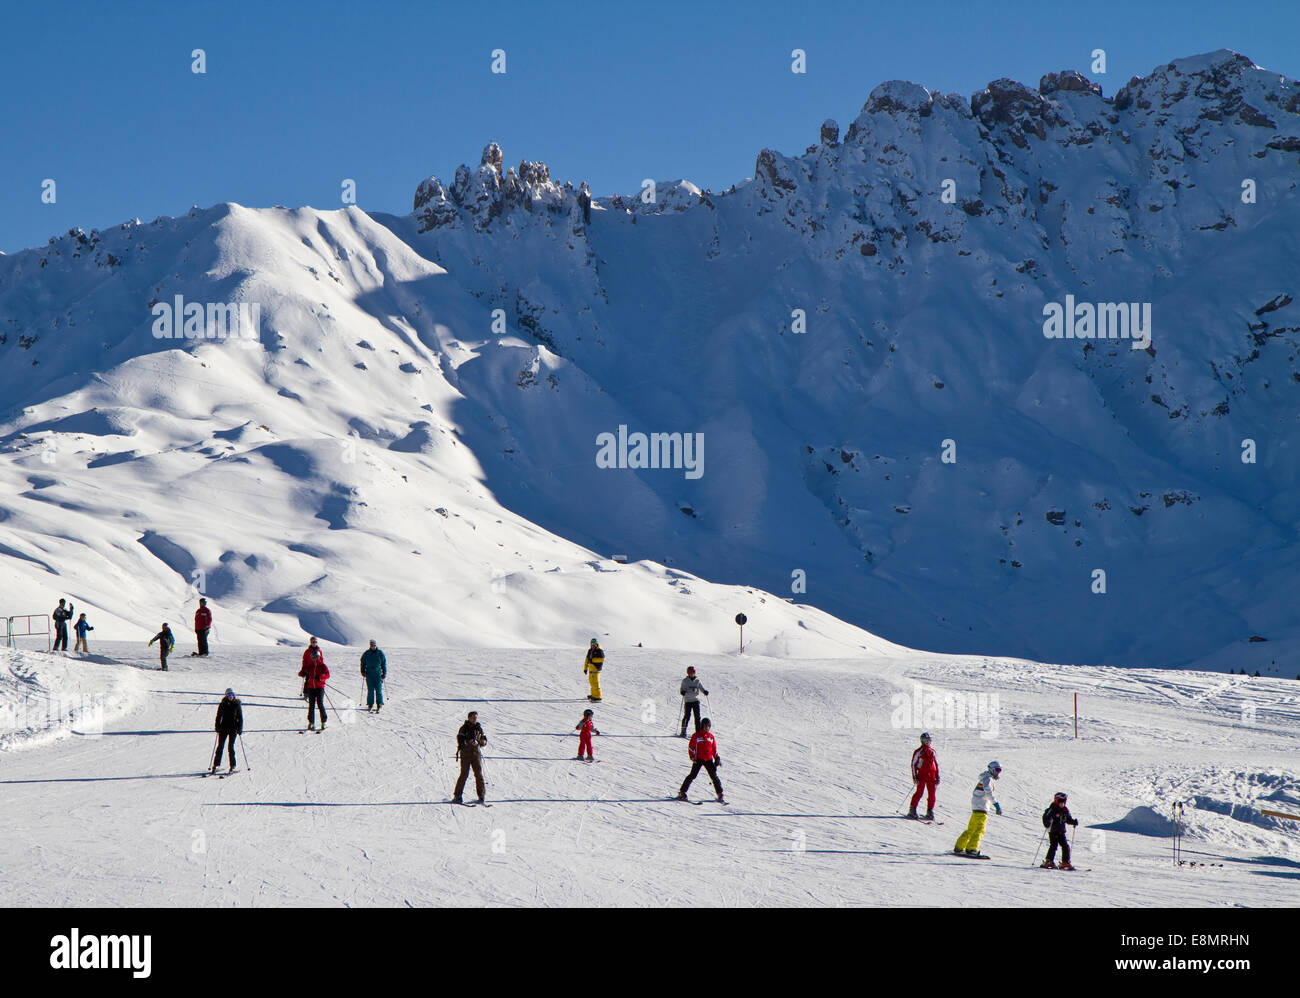 Skiing ob seisser alm, italy - Stock Image